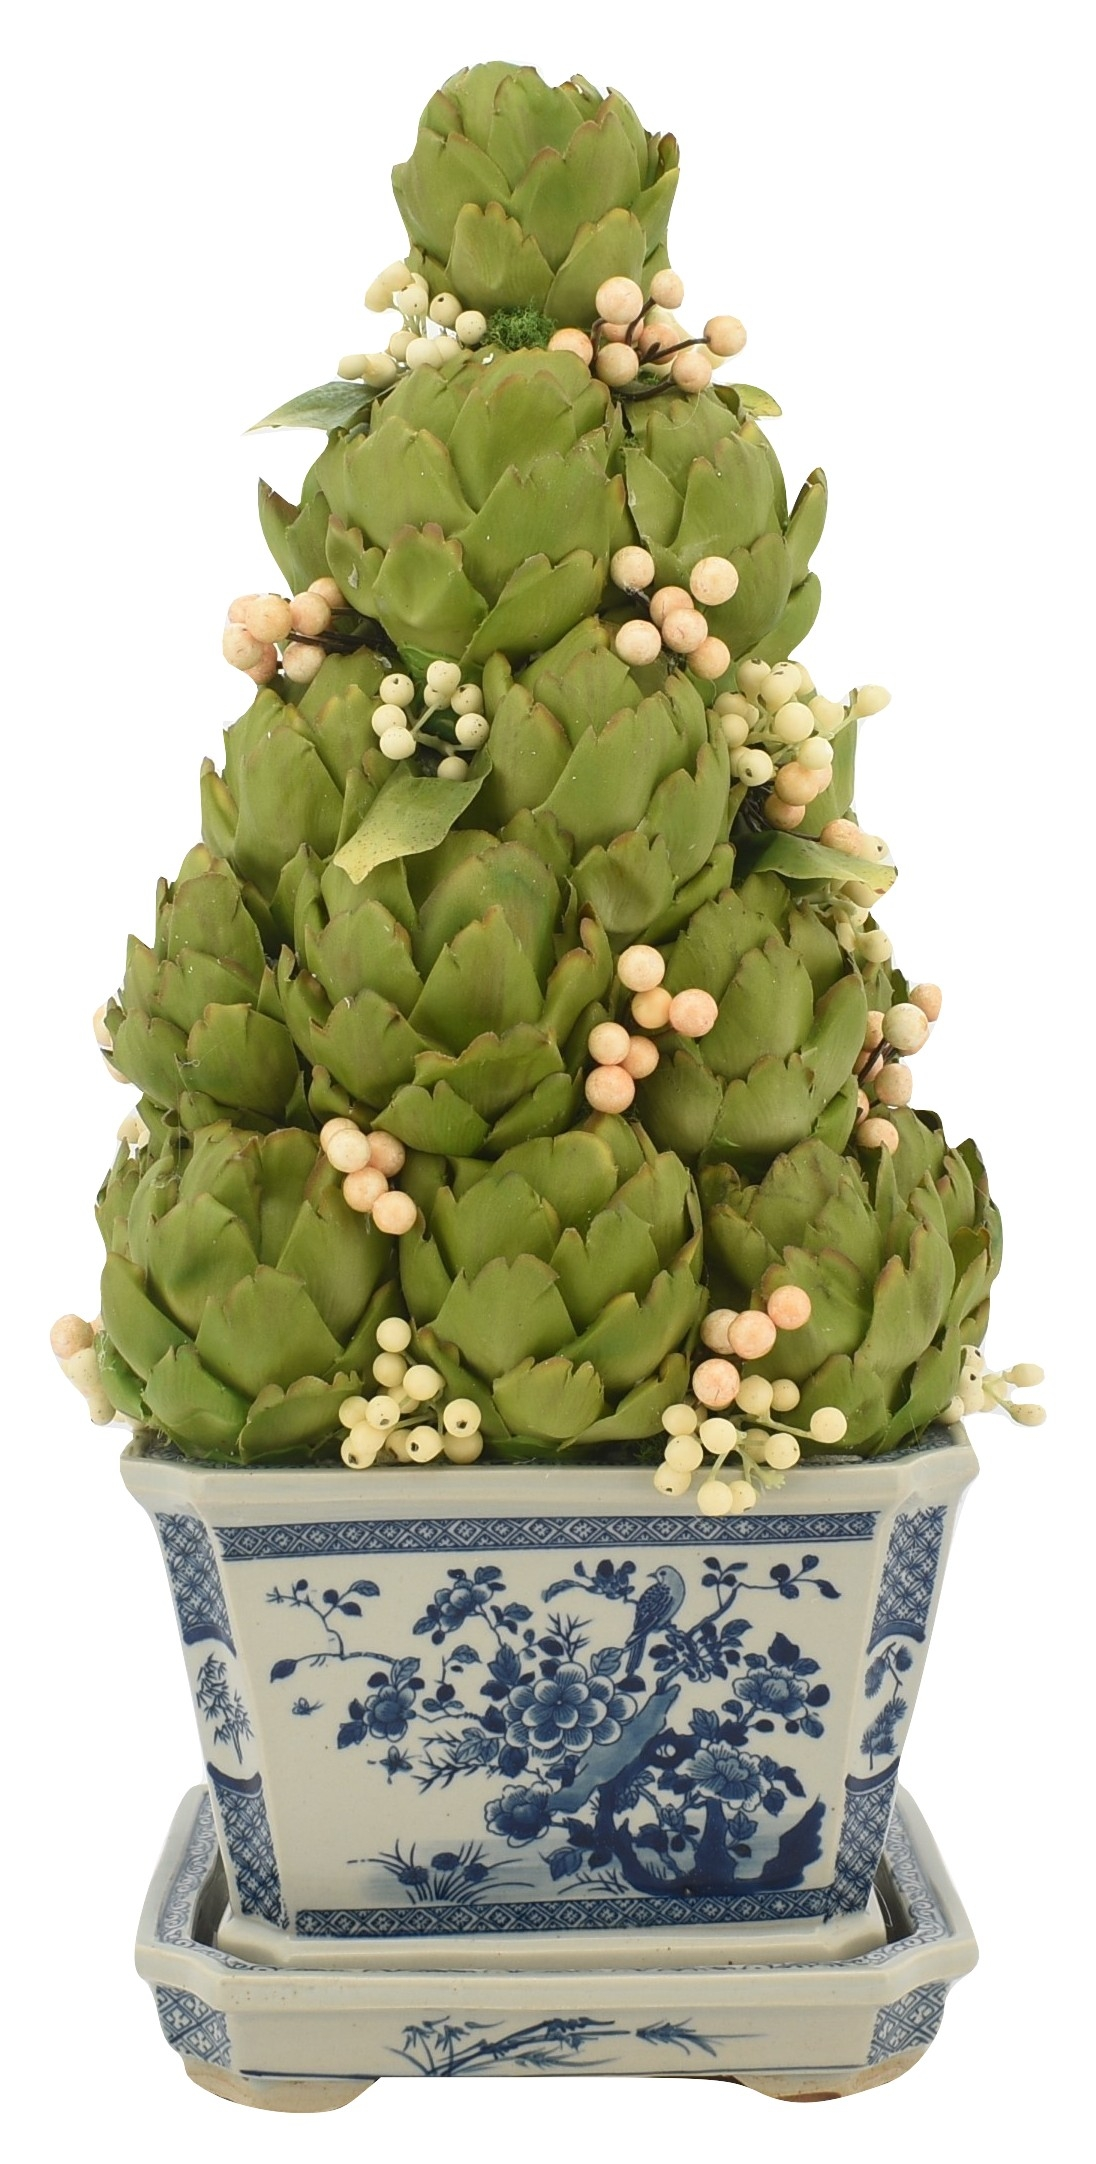 Incredible new artichoke/white berry topiary in blue/white planter